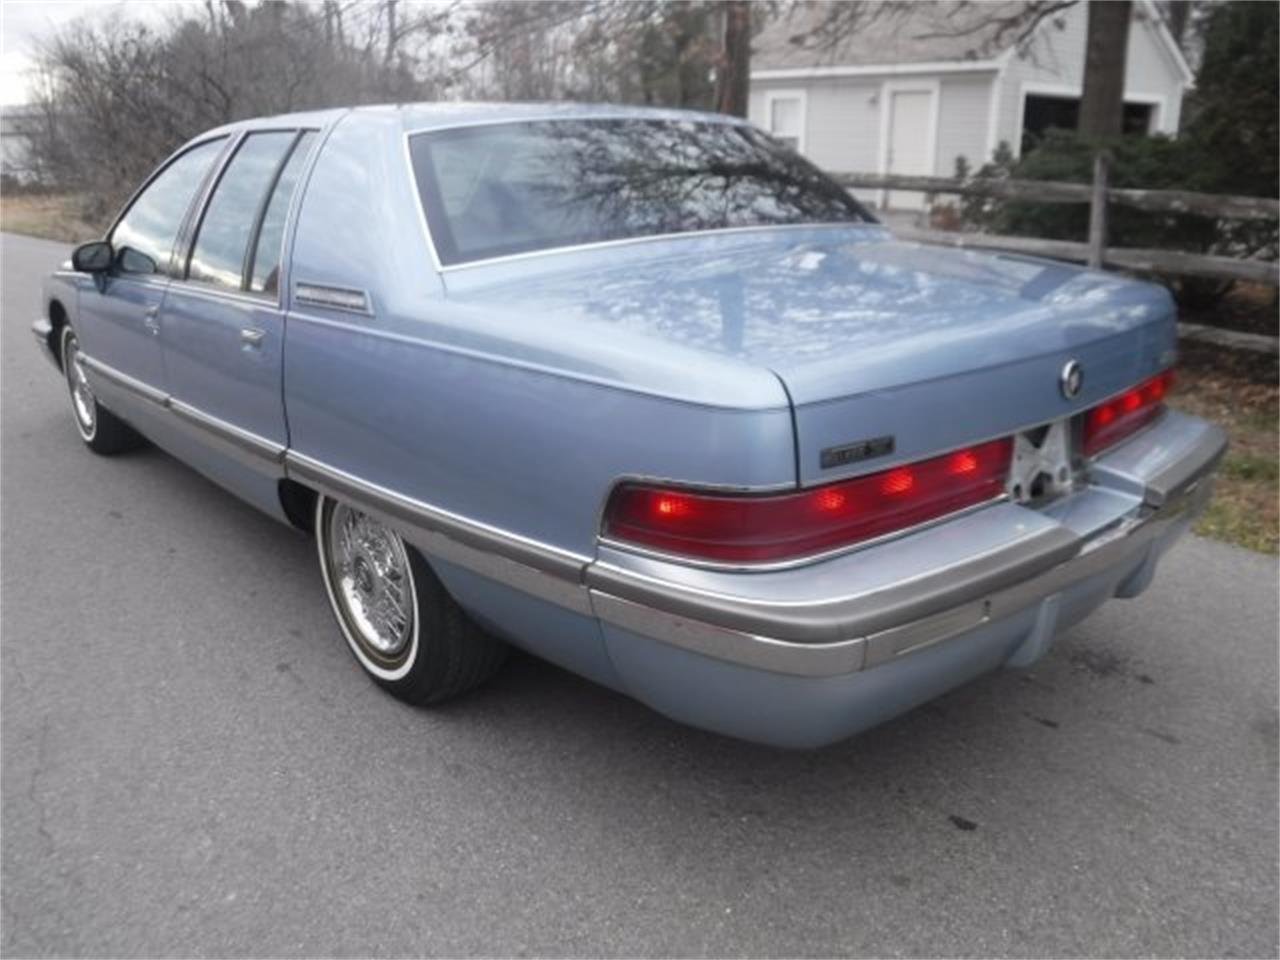 1992 buick roadmaster for sale classiccars com cc 1319185 1992 buick roadmaster for sale